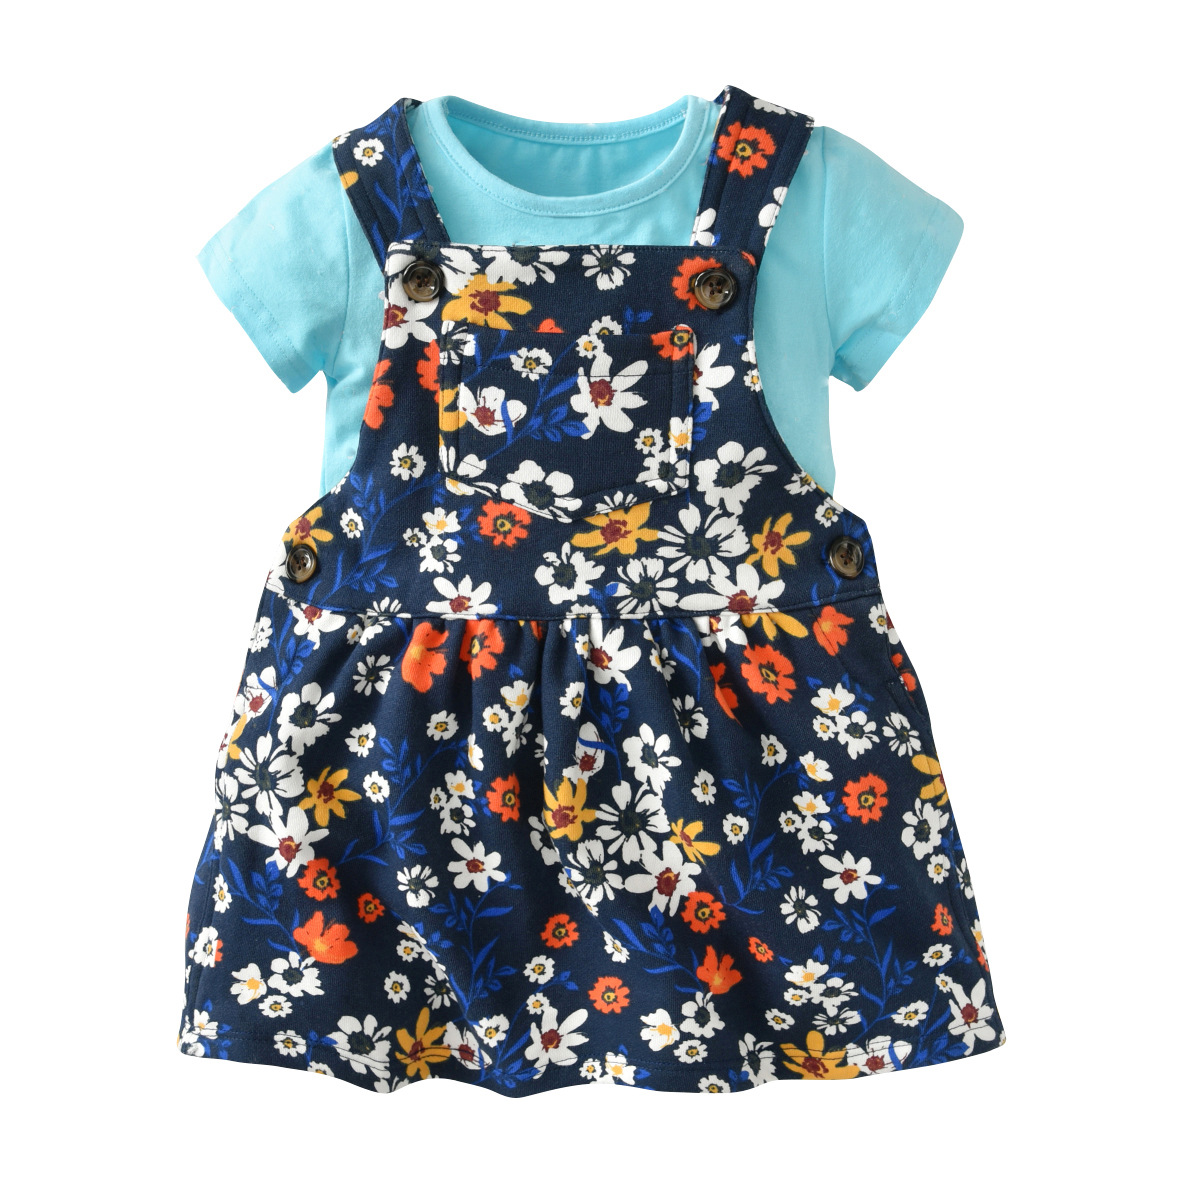 2018 New Baby Girls Summer Sets Coat + Skirt Short Sleeved Clothes Newborn Outwear Suit Infant Dresses 2 Pcs Baby Sets For Girl